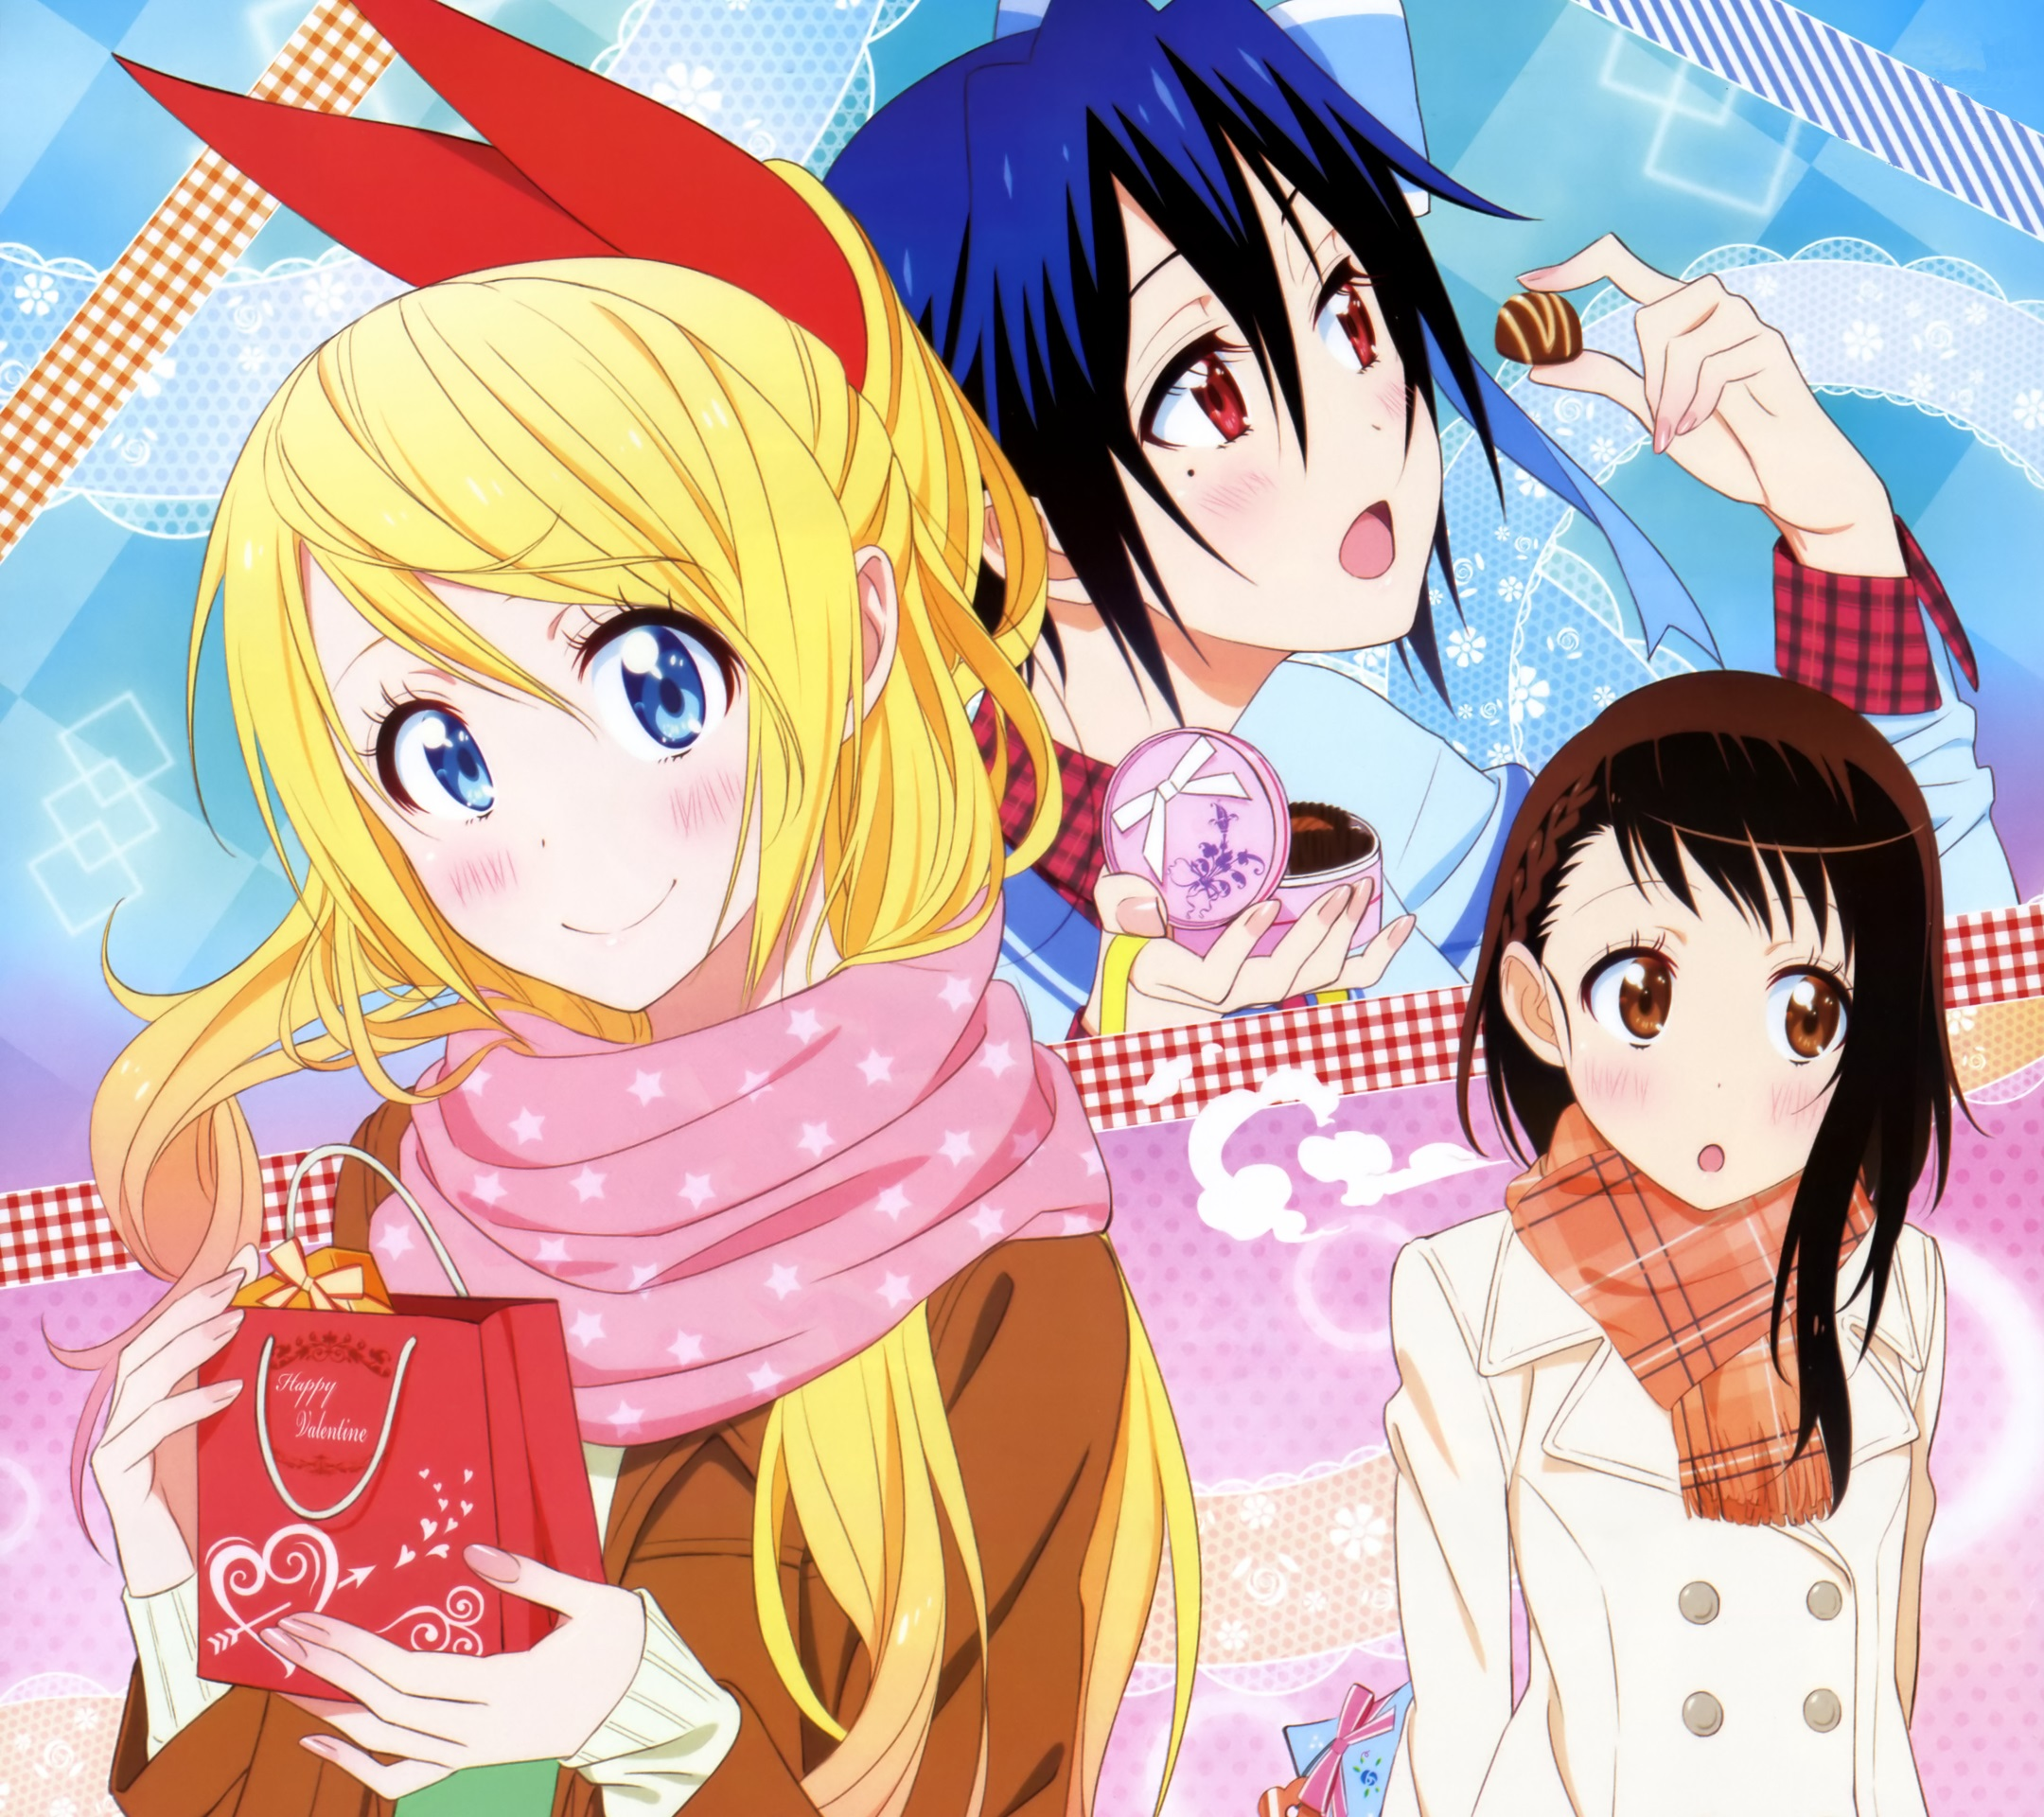 Nisekoi: False Love mobile phone wallpapers